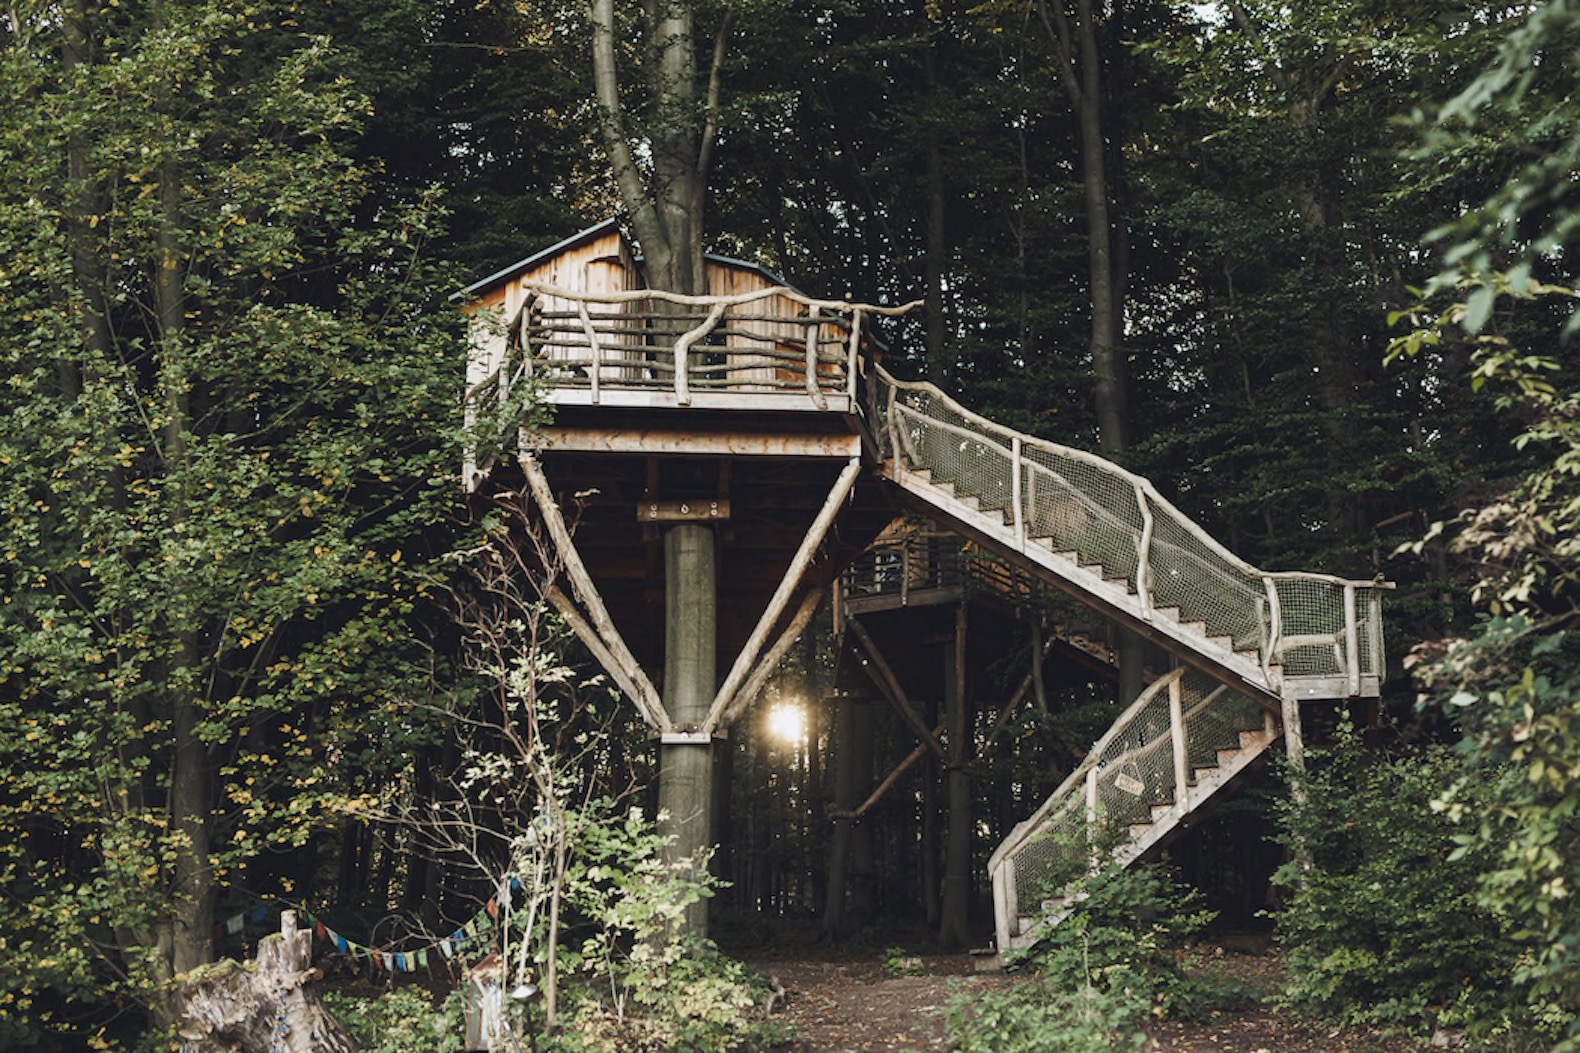 Gorgeous Robins Nest Treehouse Hotel Immerses You In